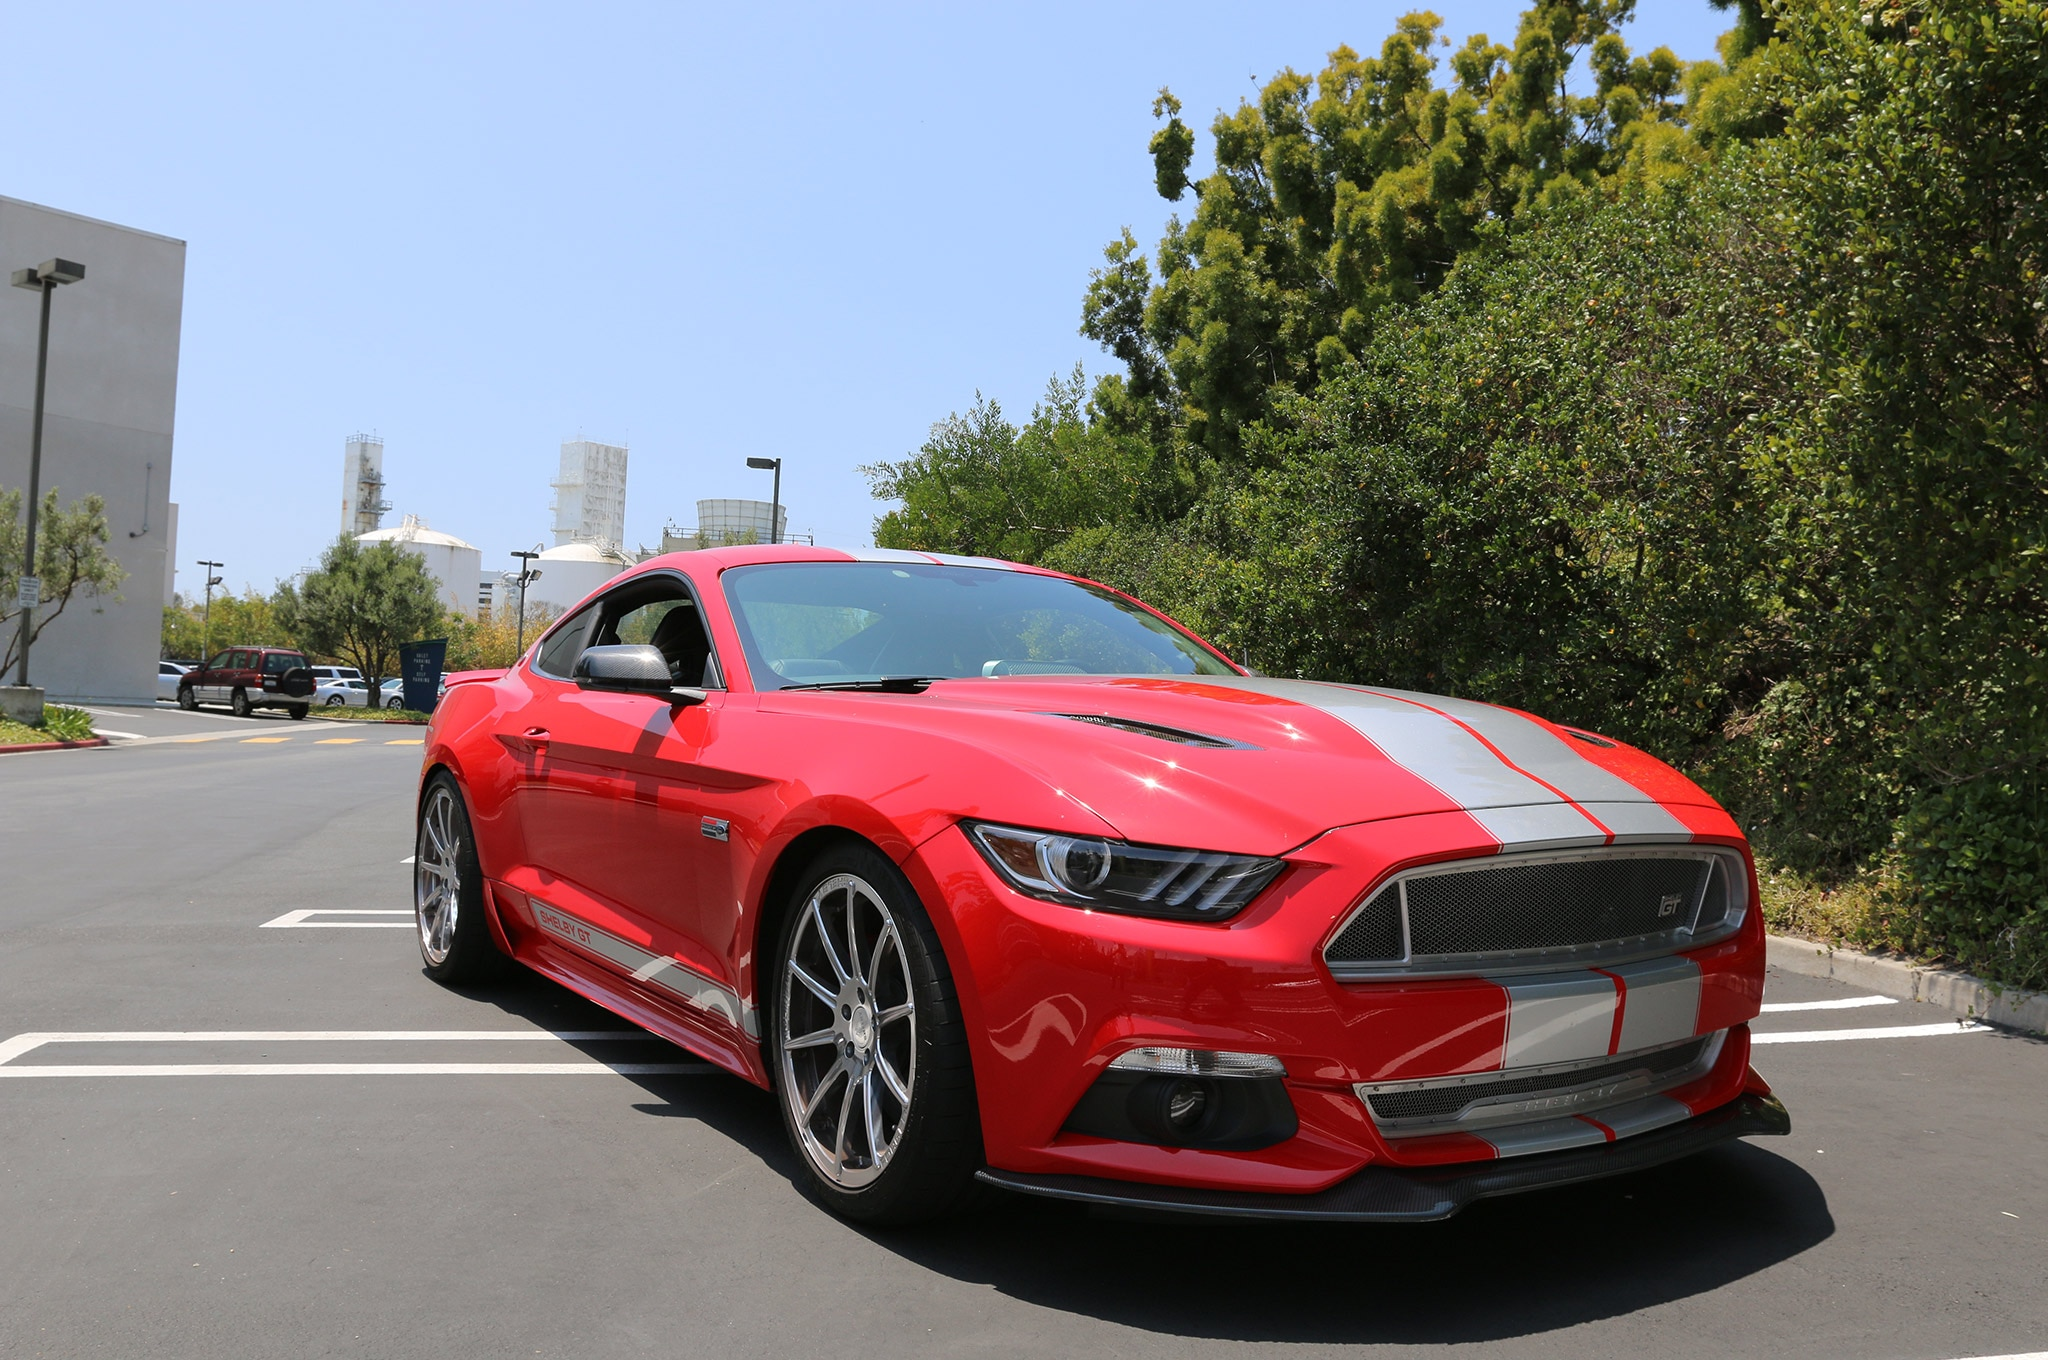 2015 Shelby GT Mustang 6